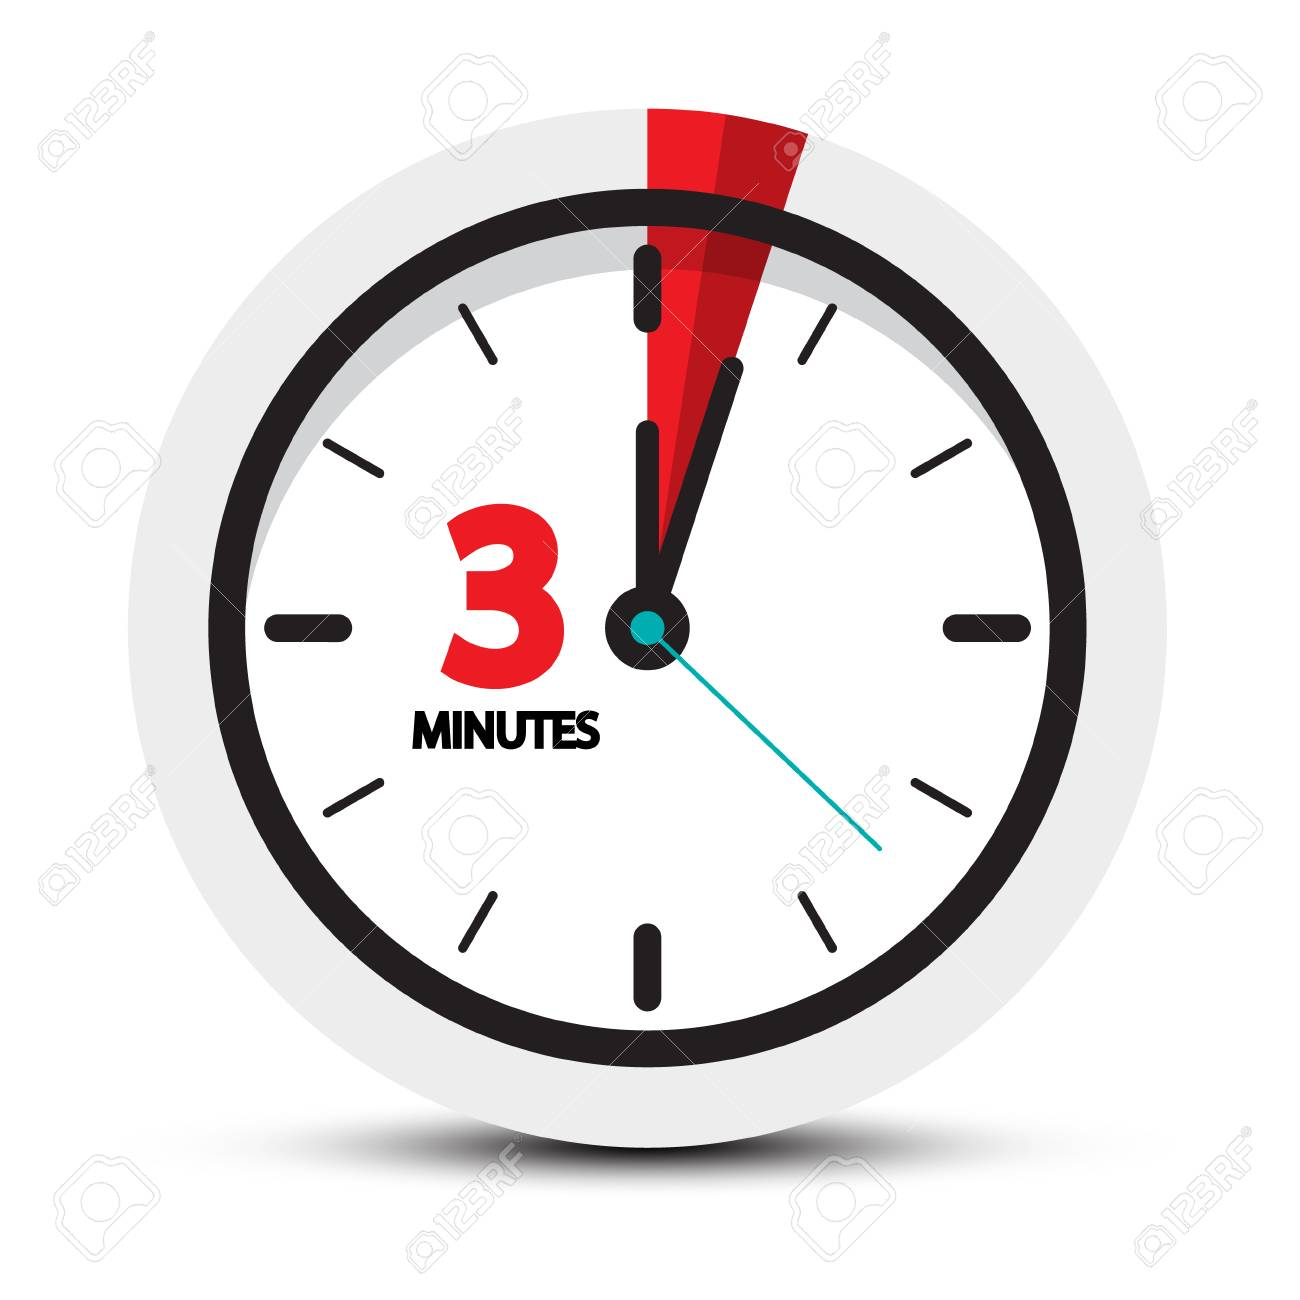 3 Minutes Icon. Clock Face with Three Minute Symbol. Vector illustration. - 96730620